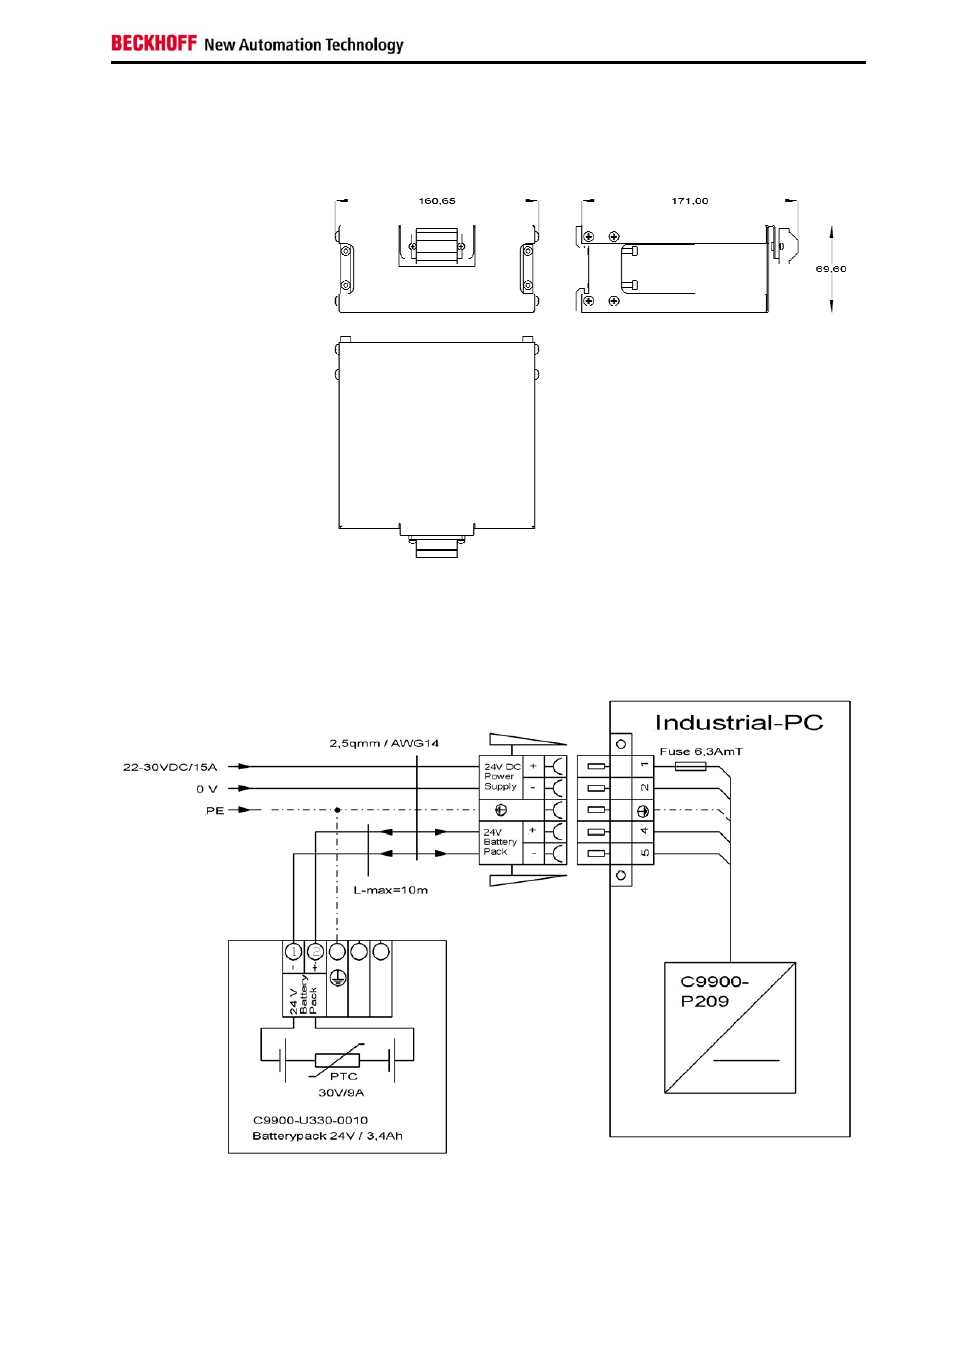 assembly dimensions, wiring diagram | beckhoff c9900-u330-0010 user manual  | page 11 / 12  manuals directory